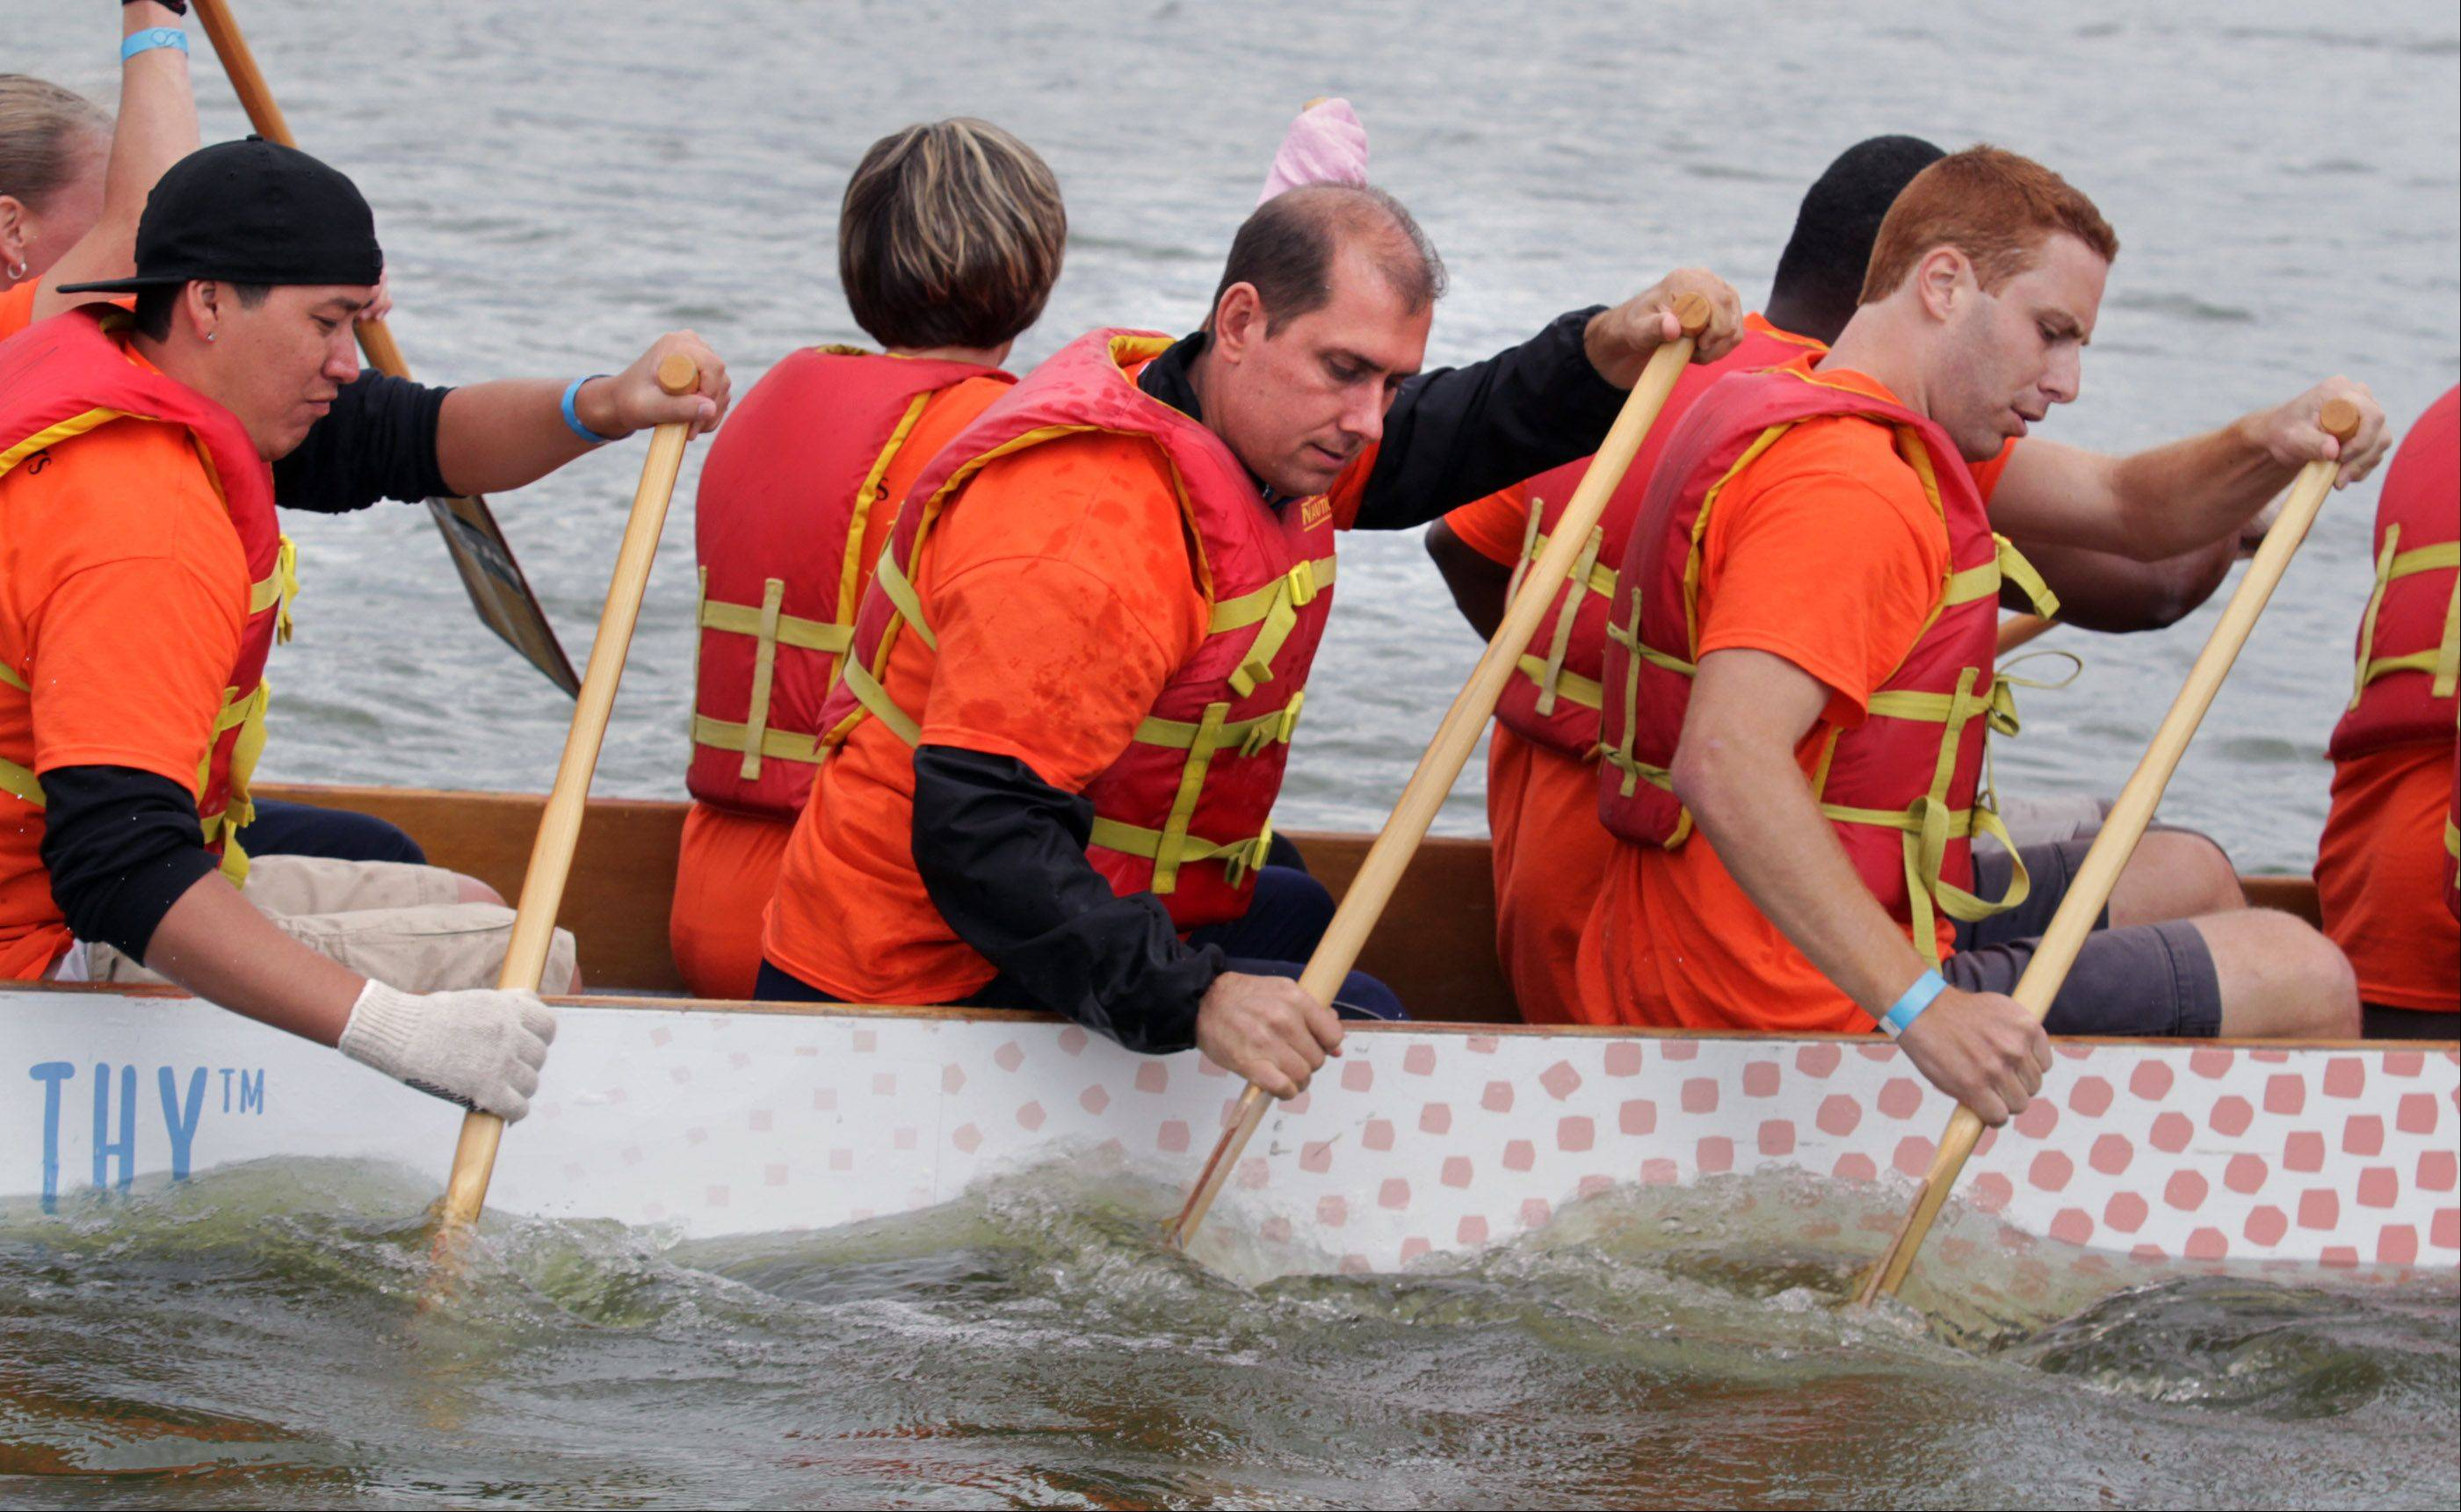 Jed Fortuna of Carol Stream, center, rows on the team for Smith Medical Partners in Wood Dale during the Walgreens Chicago International Dragon Boat Festival in Arlington Heights on Saturday.